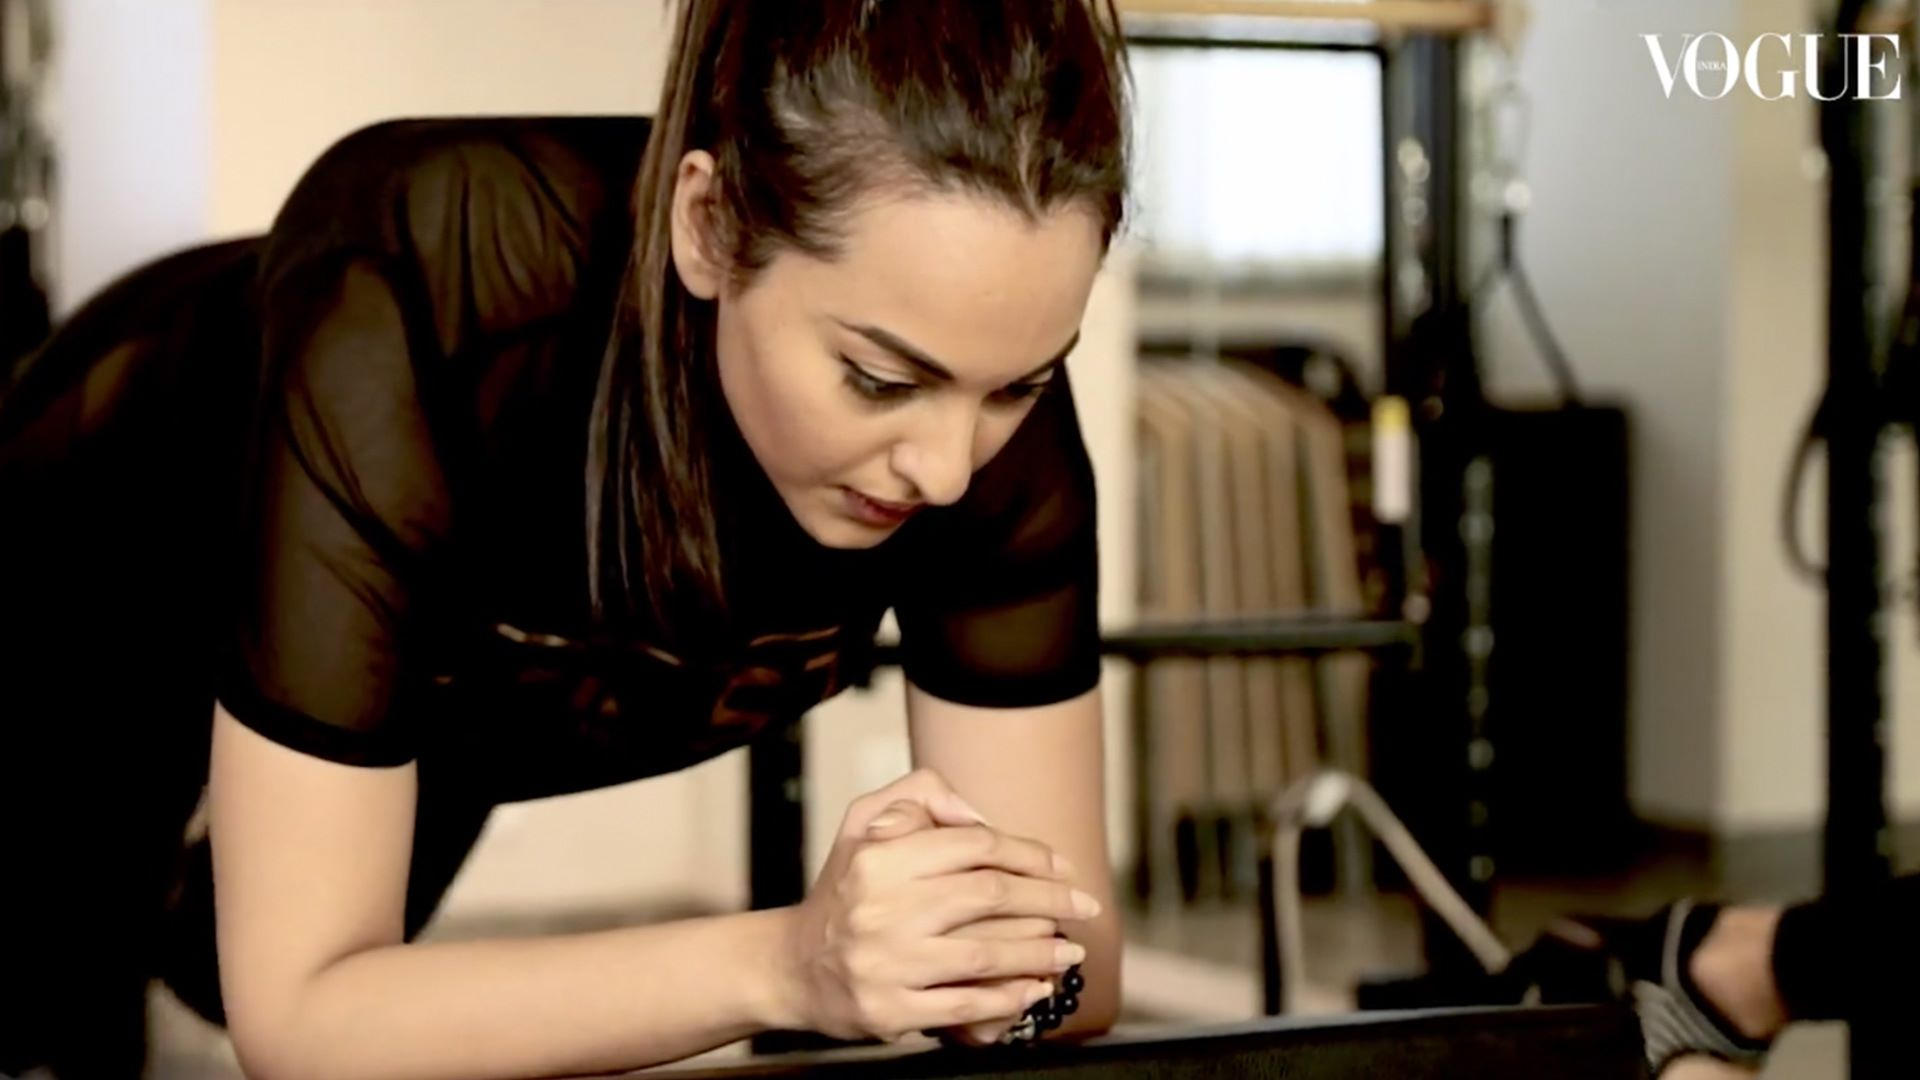 A lot of #Bollywood celebrities swear by pilates because of it's benefits. We discovered that Sonakshi Sinha is a big fan too. ❤  Here's a peek at her workout routine at #ThePilatesStudio with her trainer NamrataPurohit💪🏼🔥  Now there's some inspiration watching this talented actress doing some serious workout on the #PilatesReformer.   http://bit.ly/2Et0kDs . . . VOGUE India